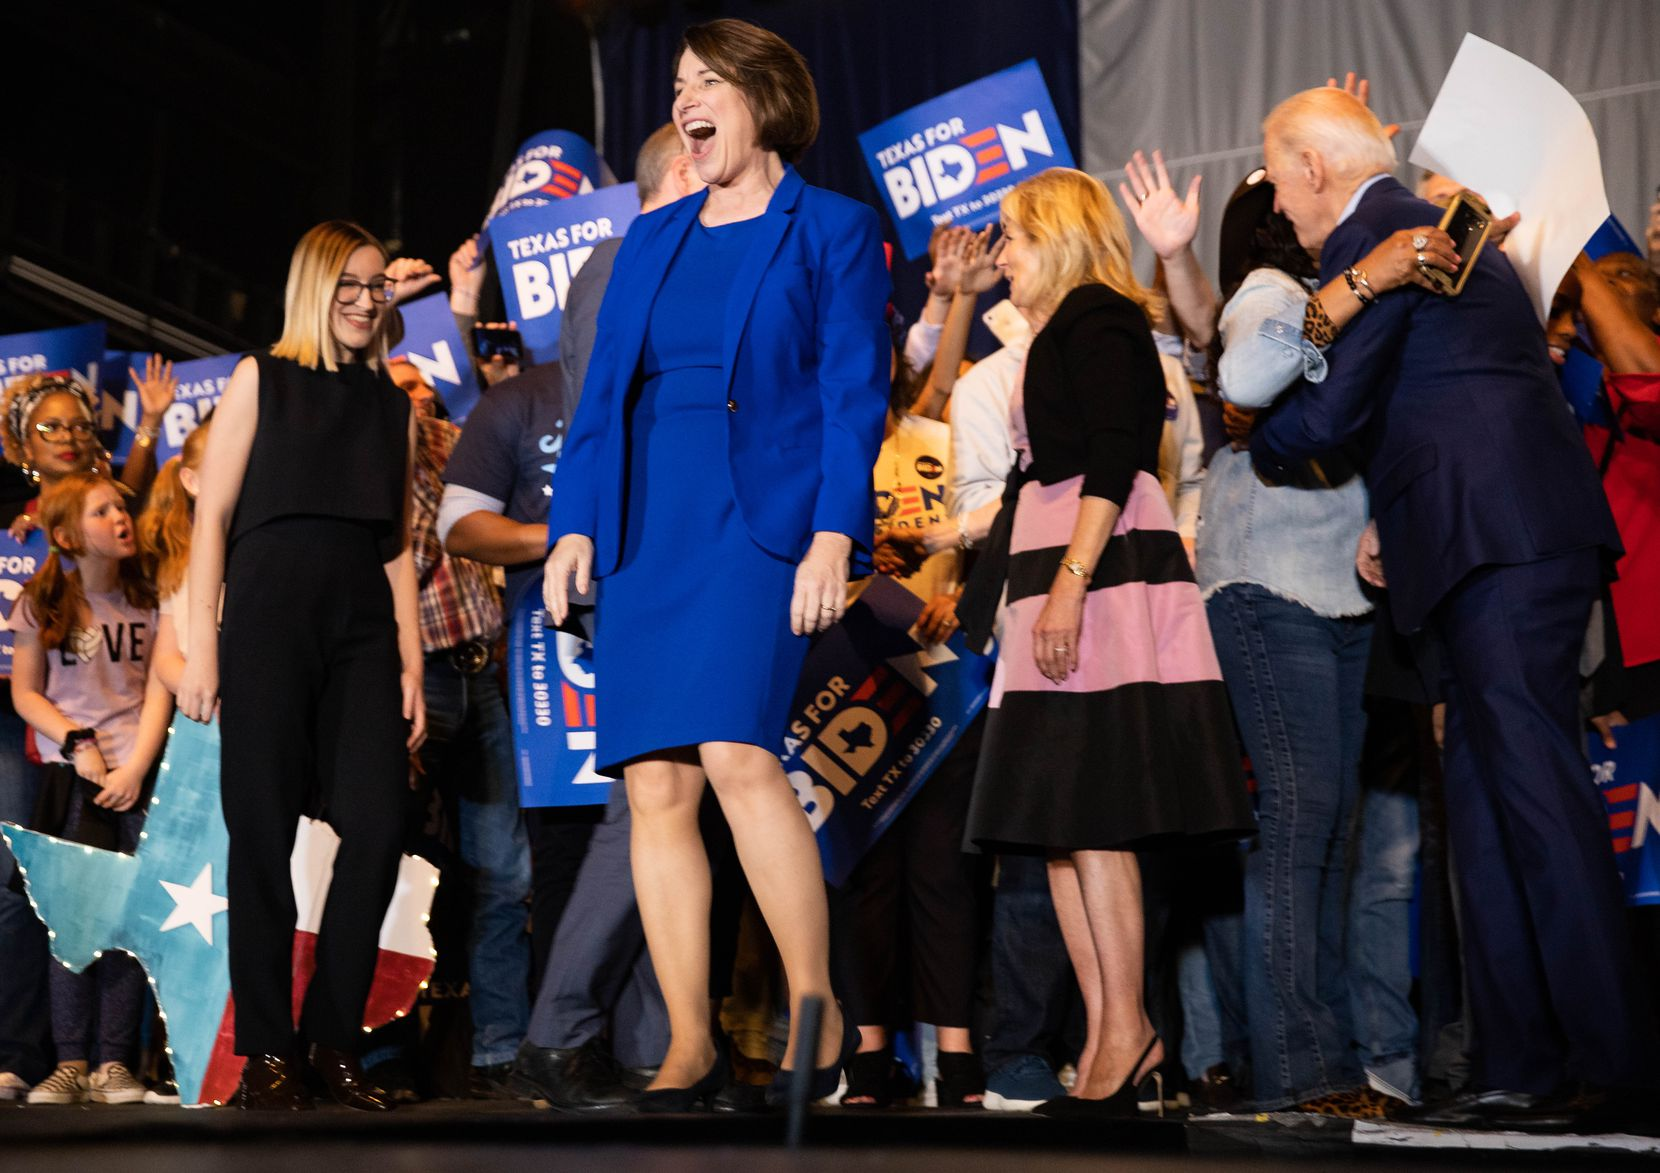 Sen. Amy Klobuchar (D-MN) endorses Democratic presidential primary candidate Joe Biden during a rally for Biden held at Gilley's in Dallas on March 2, 2020.